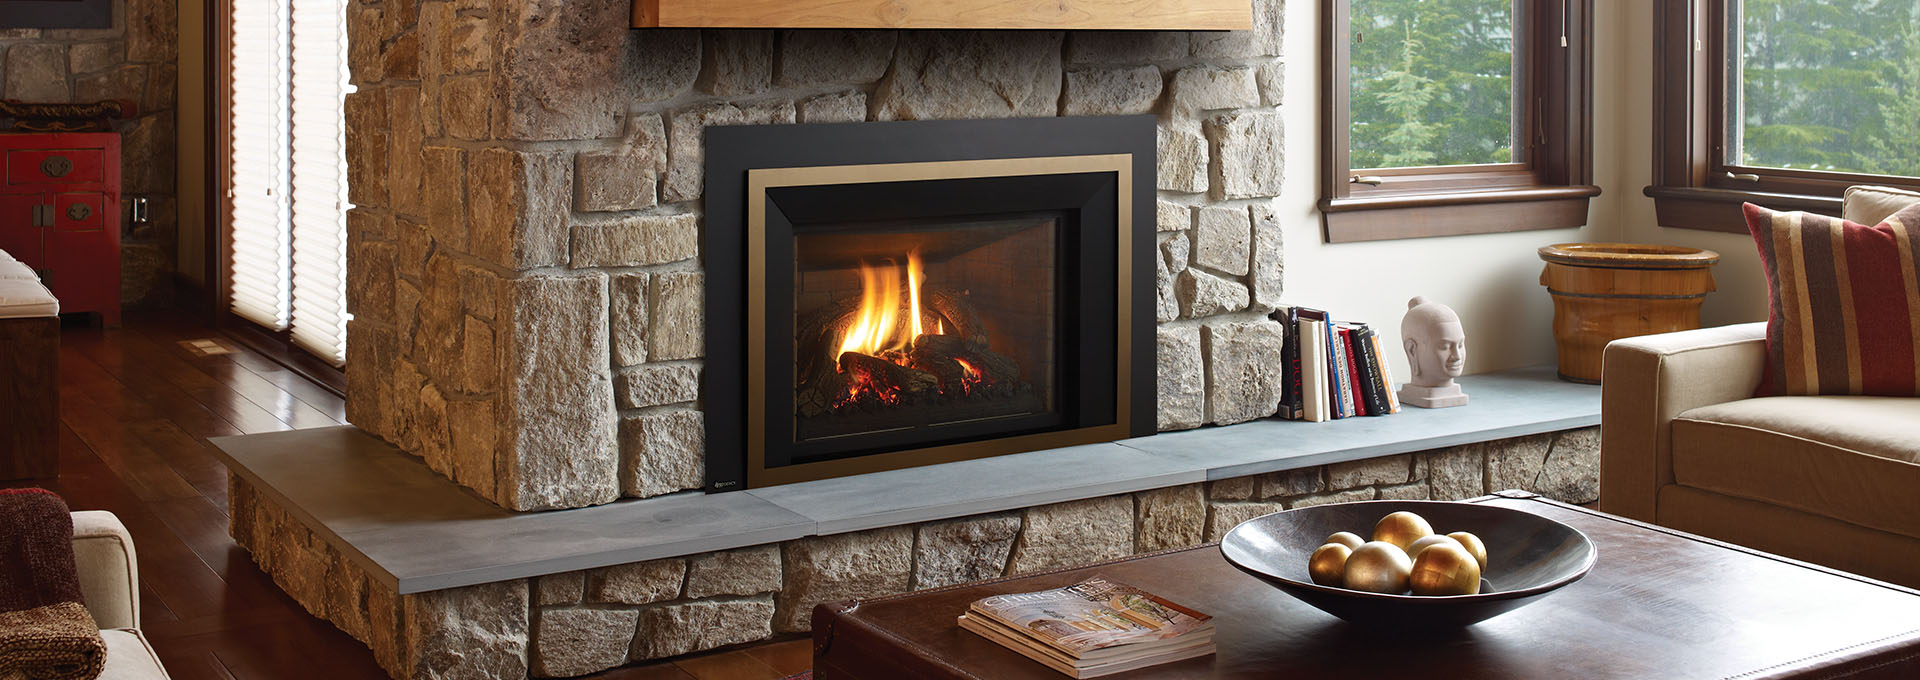 Regency Liberty Lri6e Gas Insert Toronto Best Fireplace